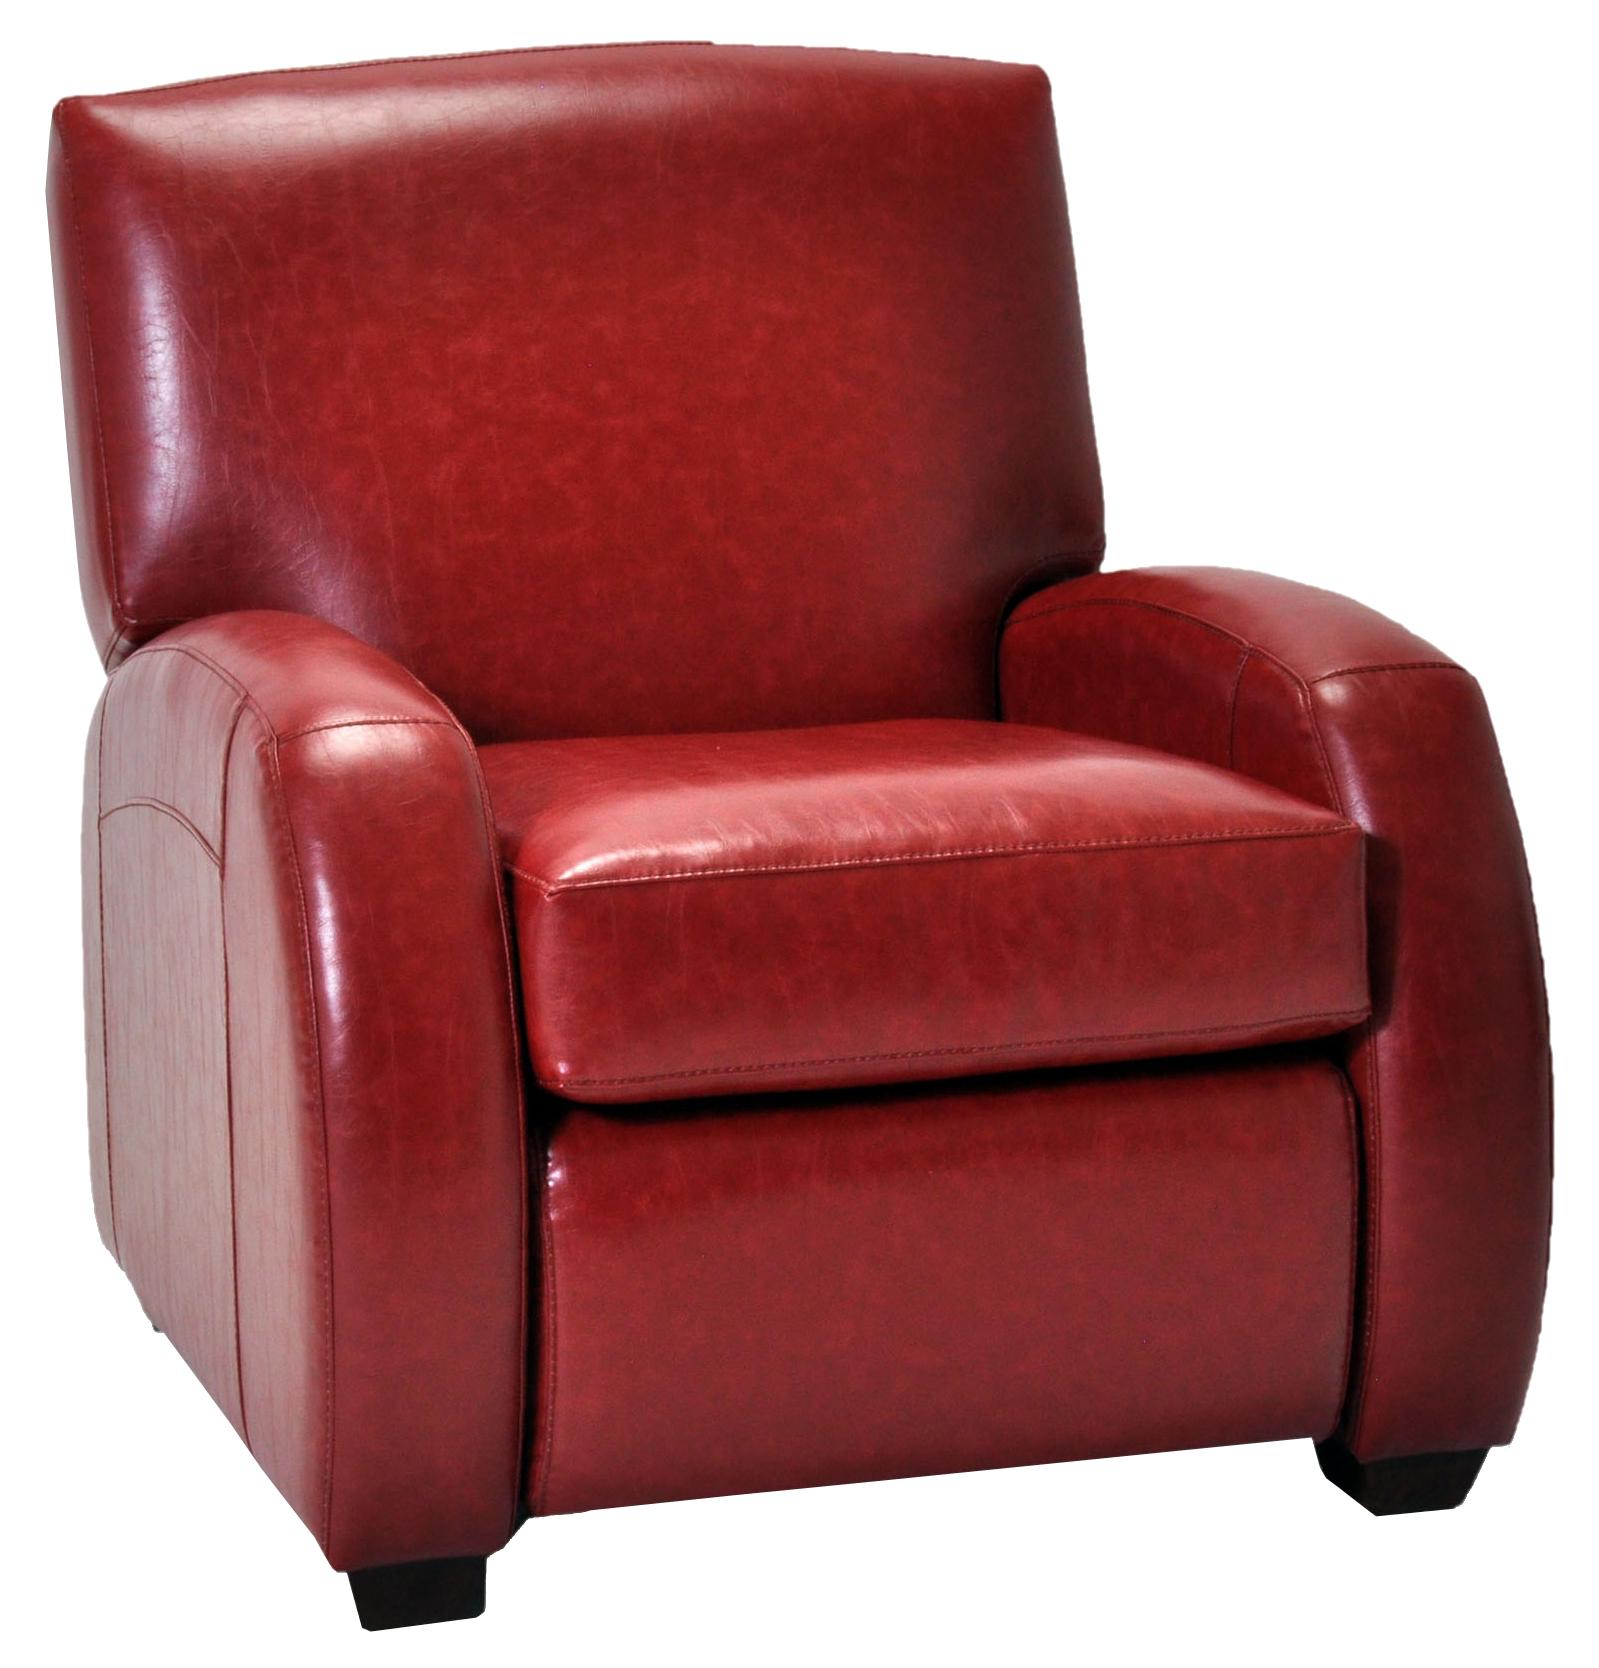 styles z complement low la superior our rocker recliner any recliners in chairs various leg main to b room boy come n